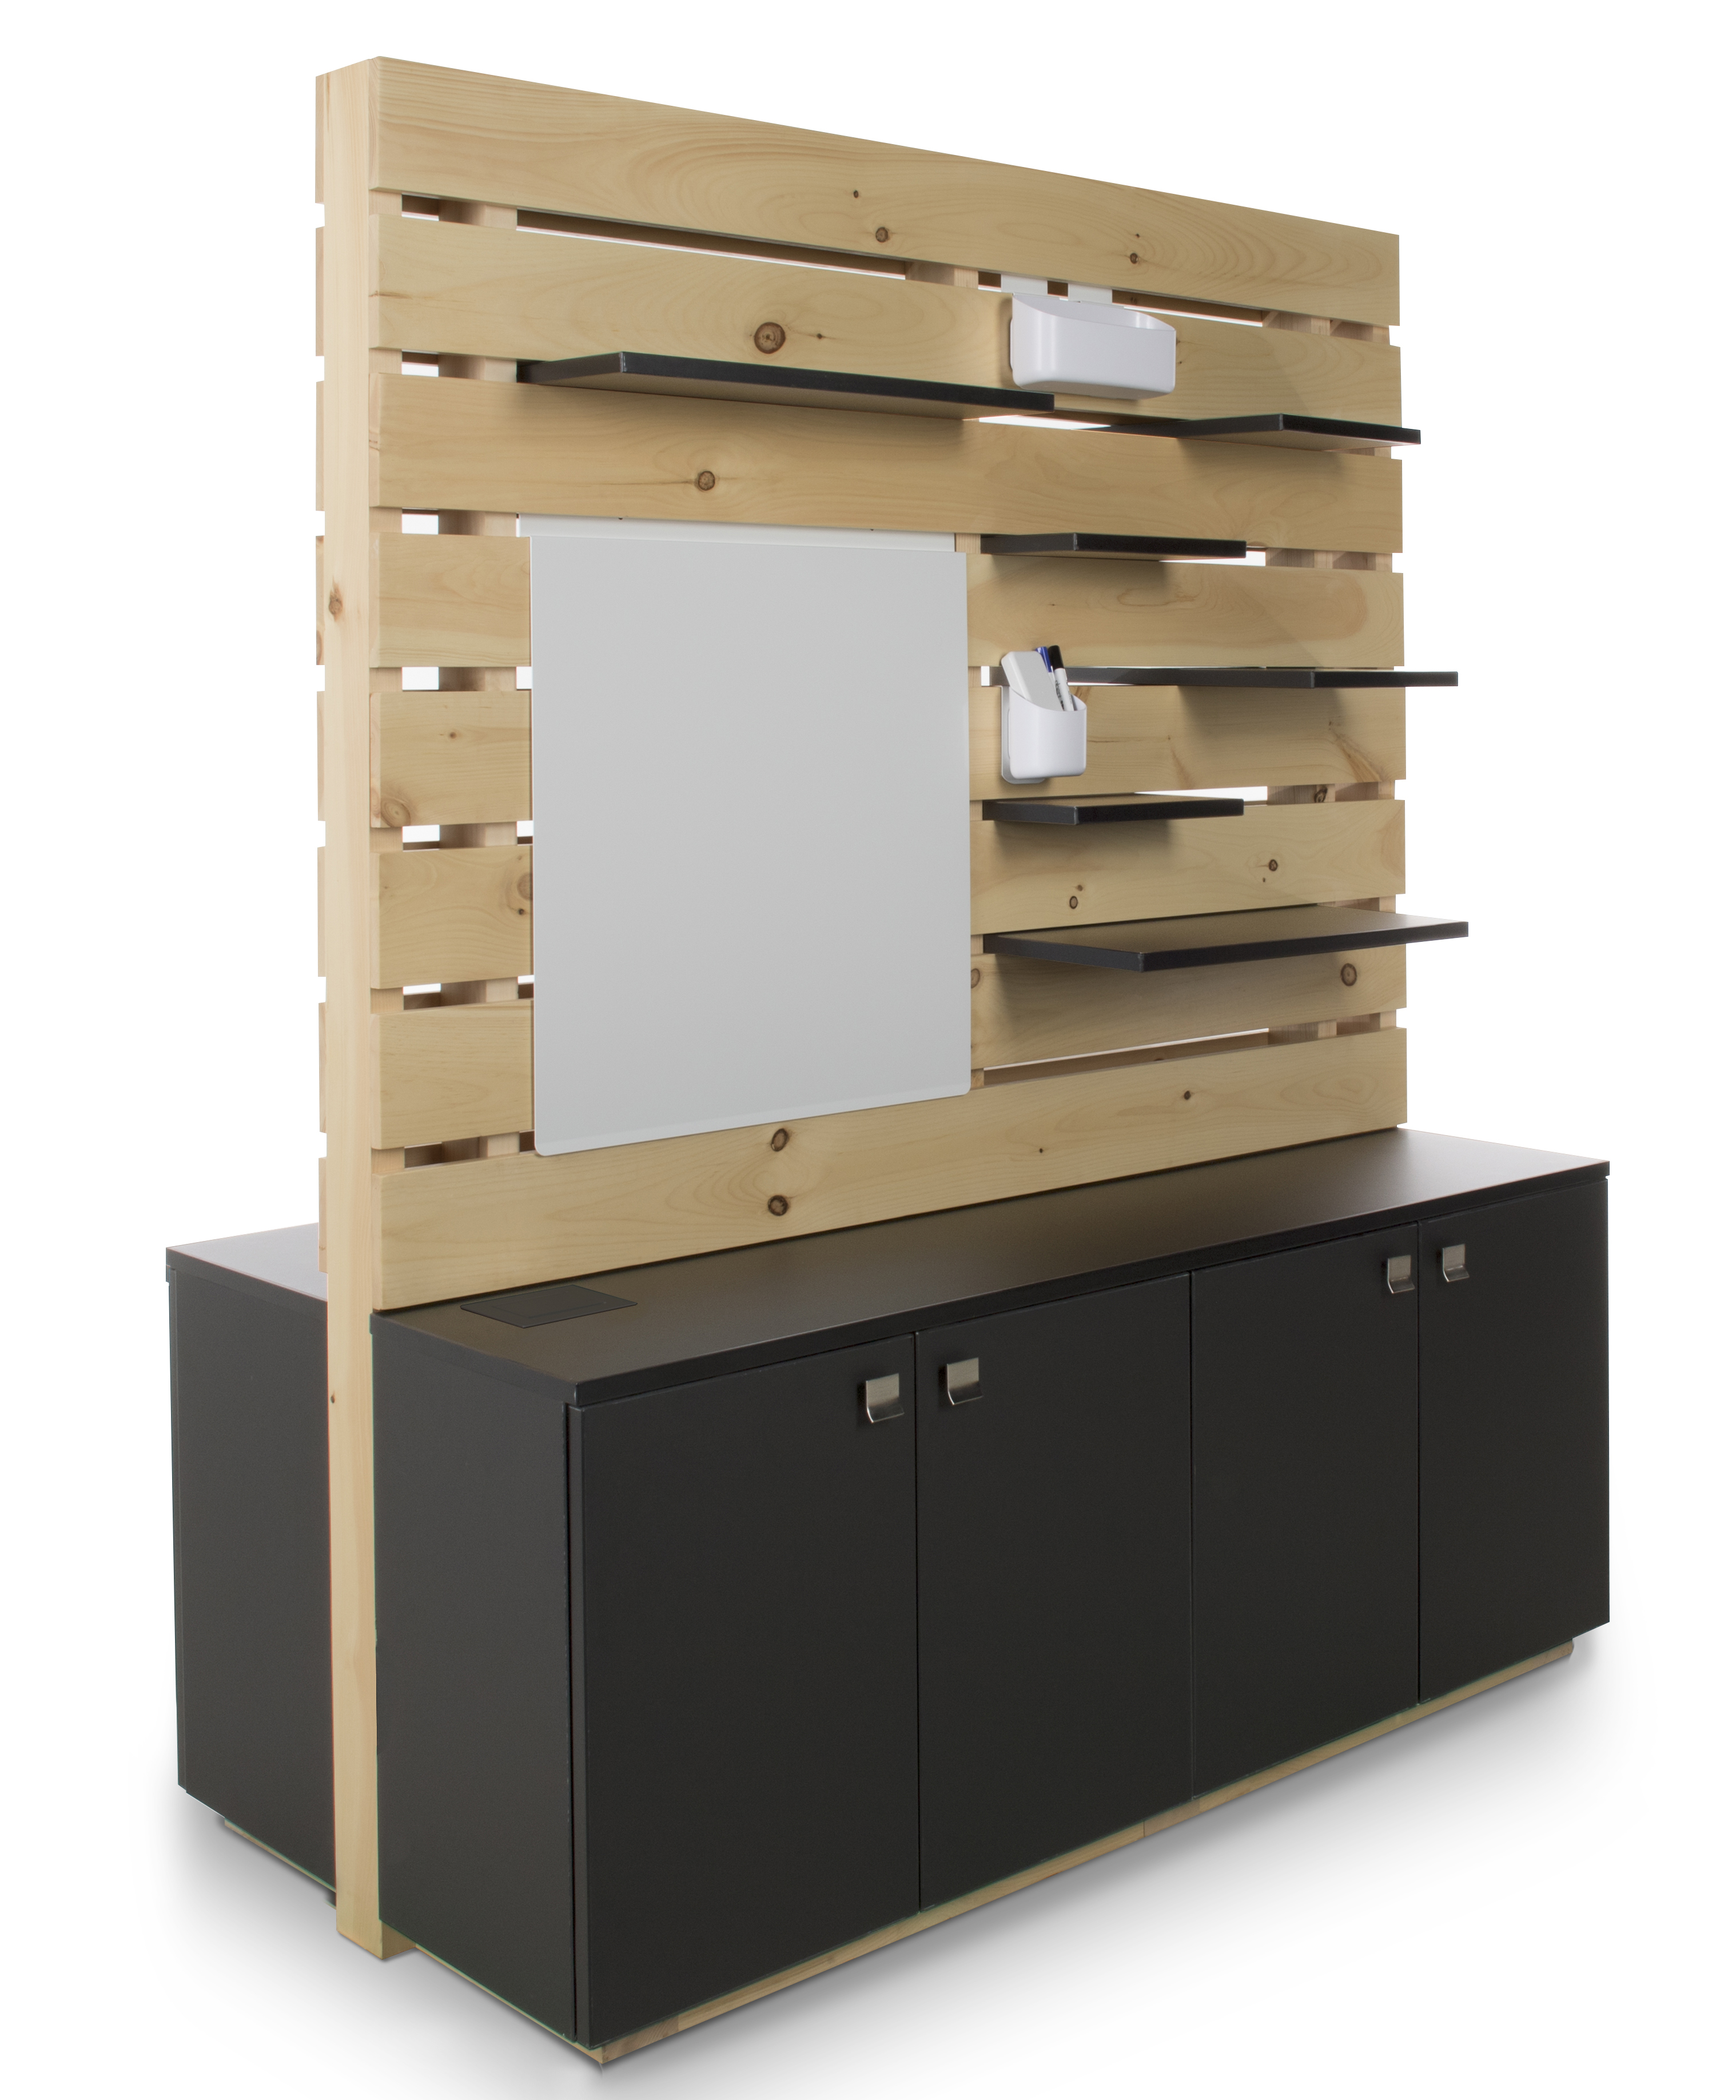 Waddell Pallet Series Space Divider Displays